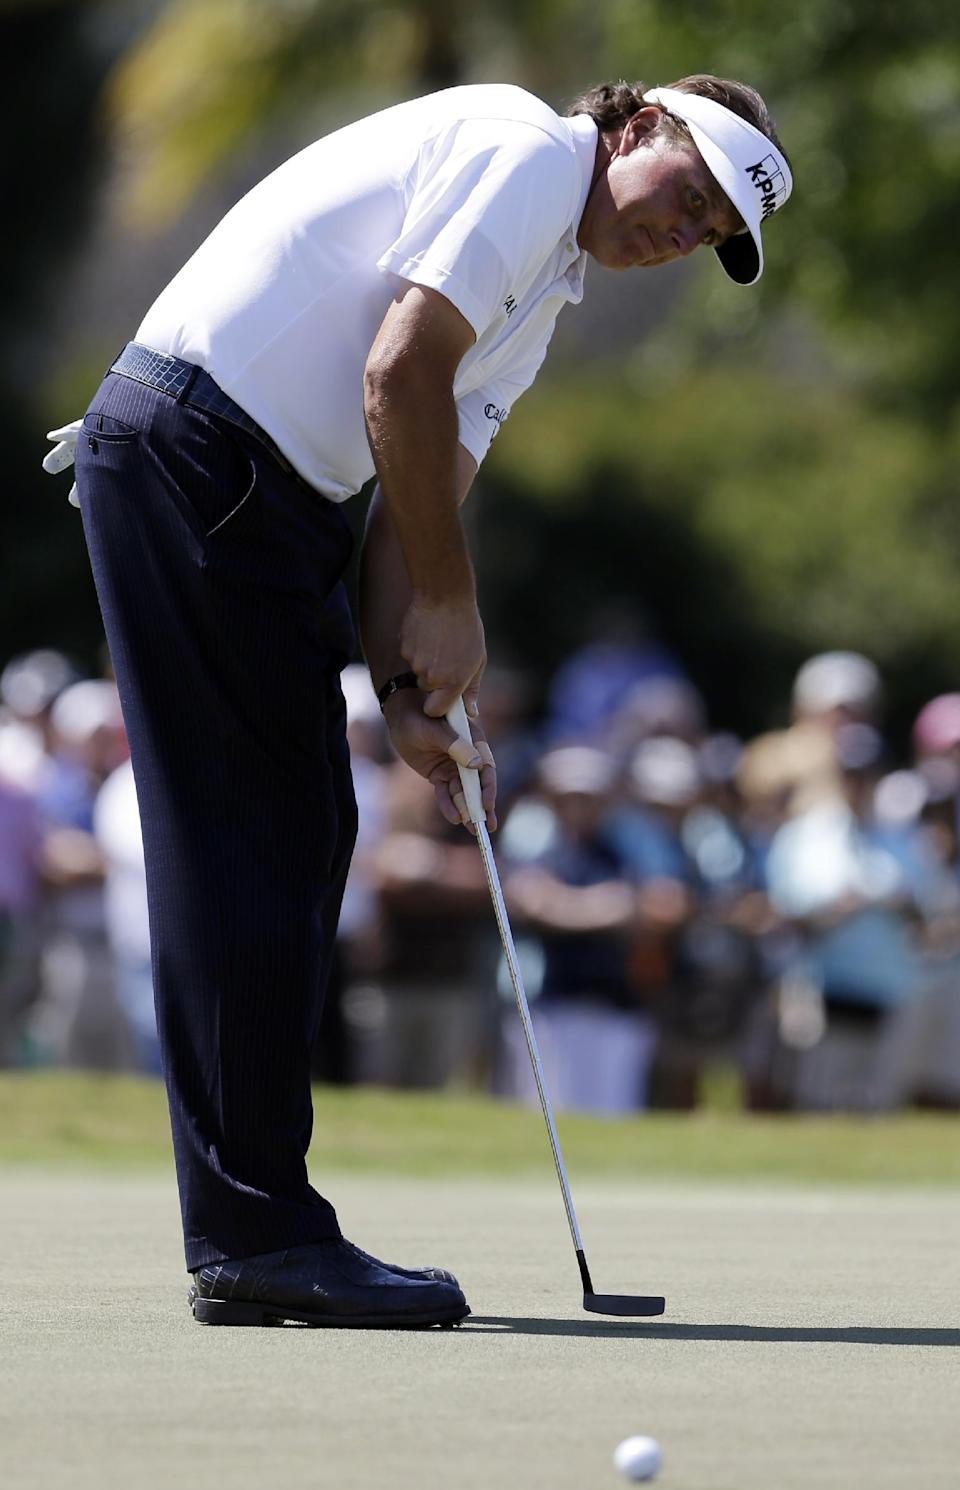 Phil Mickelson watches his putt stop short of the cup on the 11th green during the second round of the Cadillac Championship golf tournament Friday, March 8, 2013, in Doral, Fla. (AP Photo/Alan Diaz)